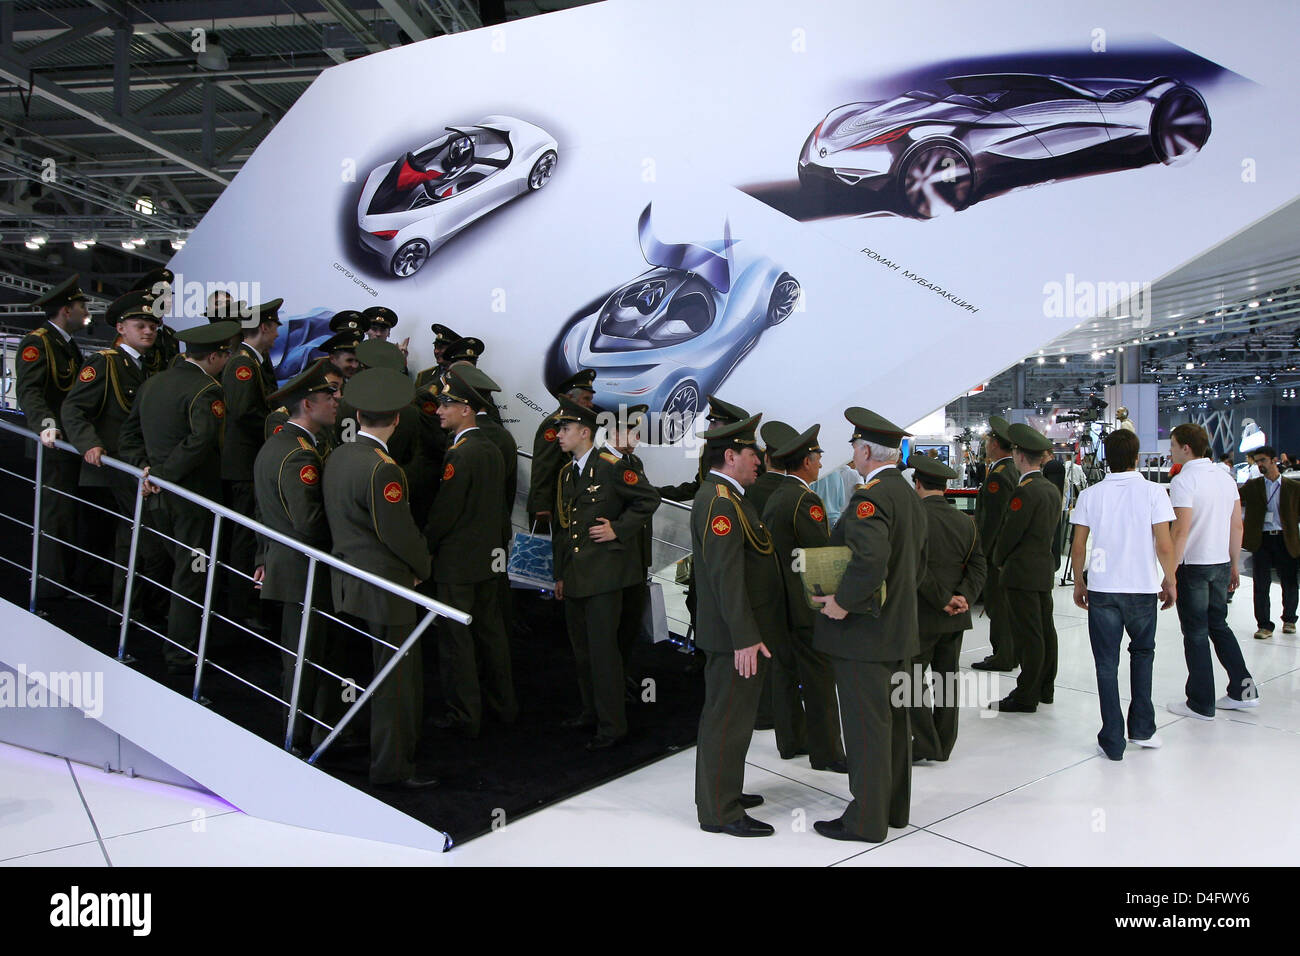 Members Of A Russian Military Choir Visit The Mazda Stand At The - Mazda military